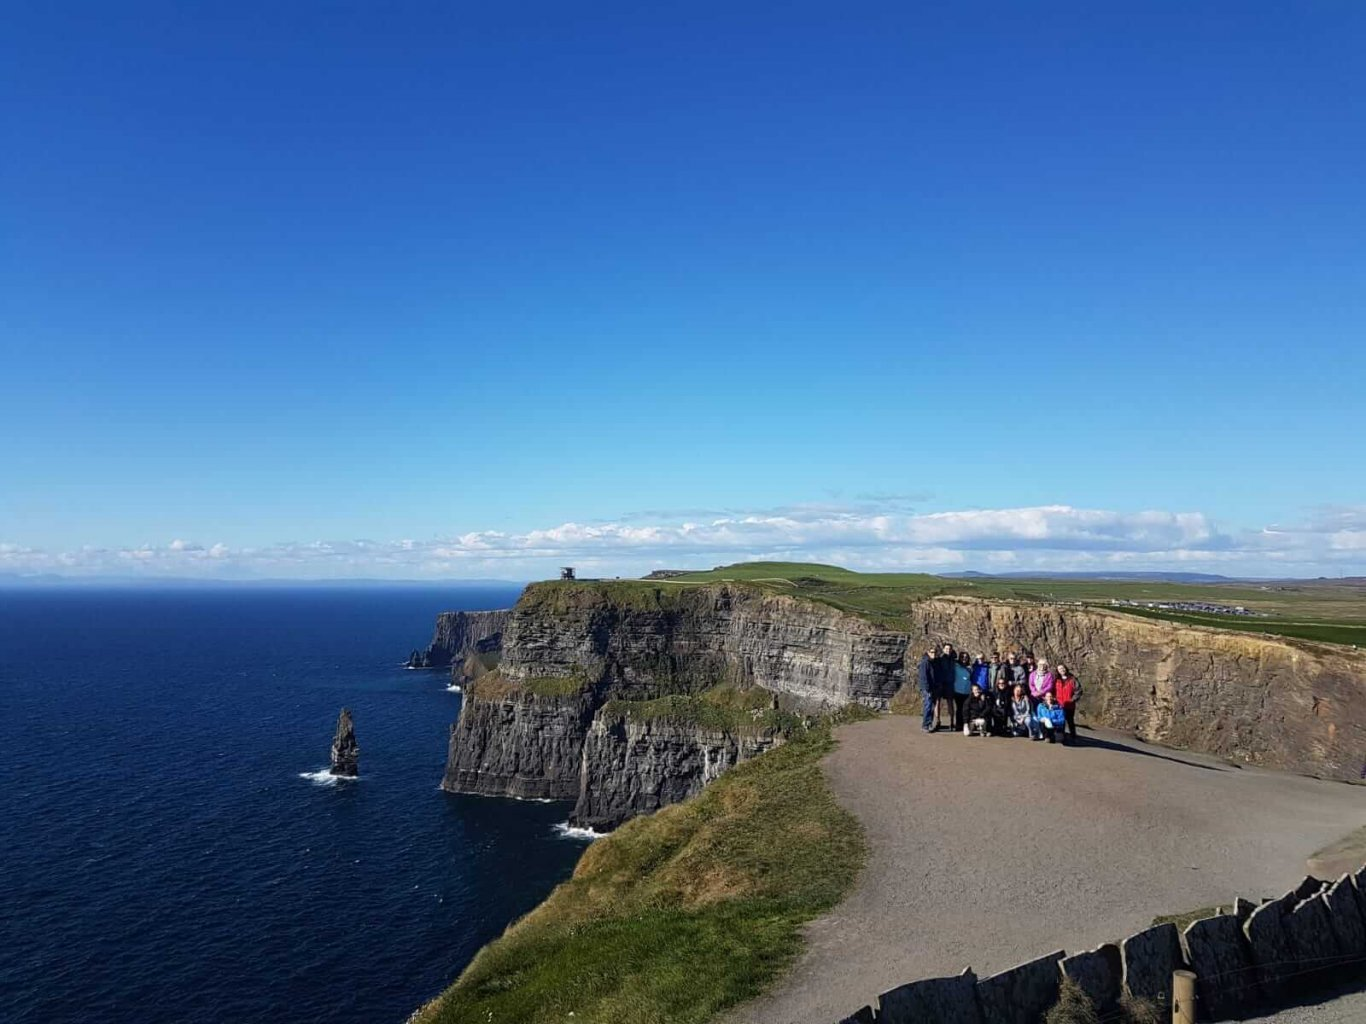 A Vagabond group posing for a picture at the cliffs of moher